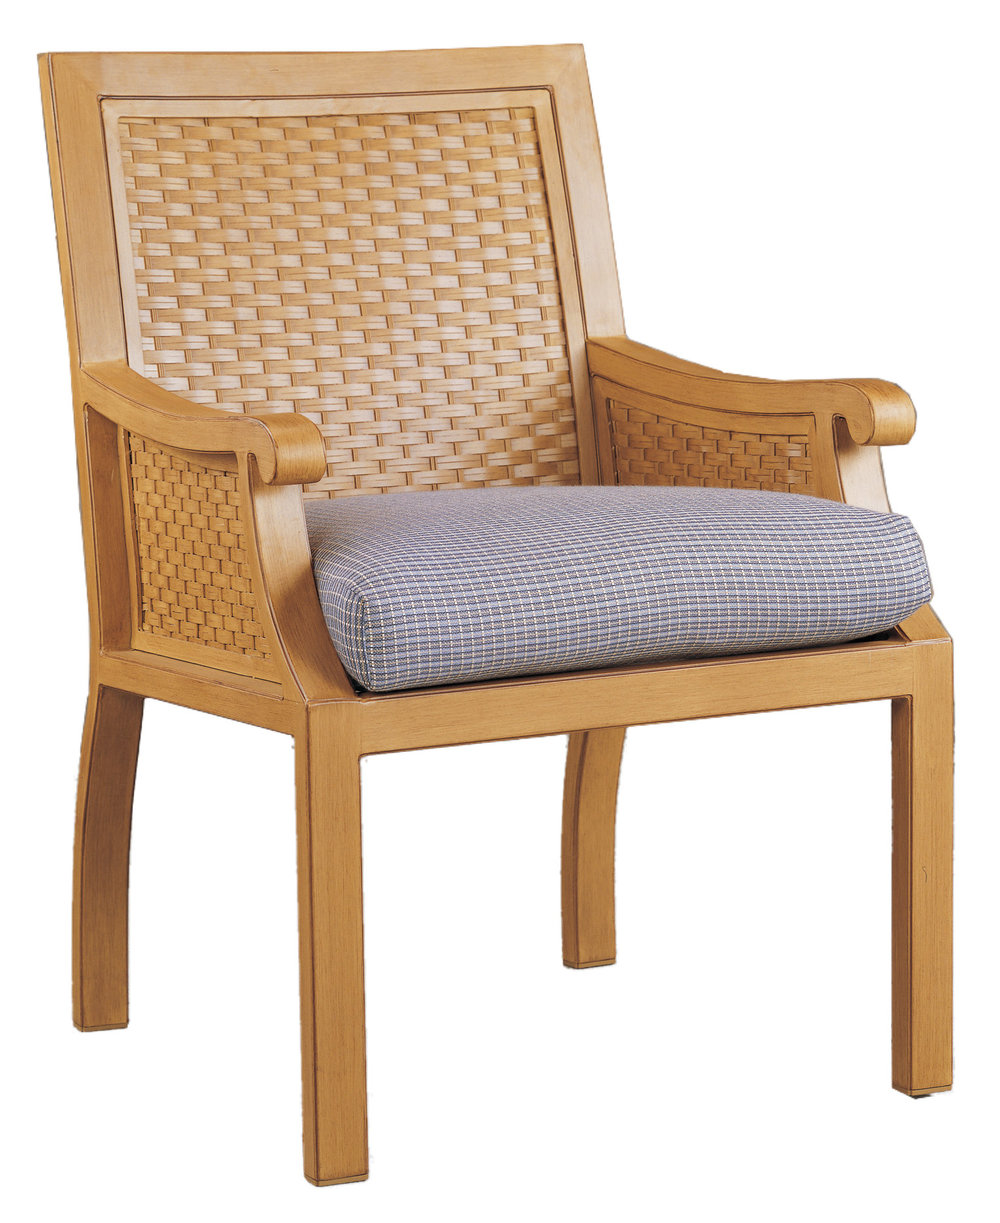 "970821 Venice Dining Chair   24.6"" x 36.6"" x 36.3"""